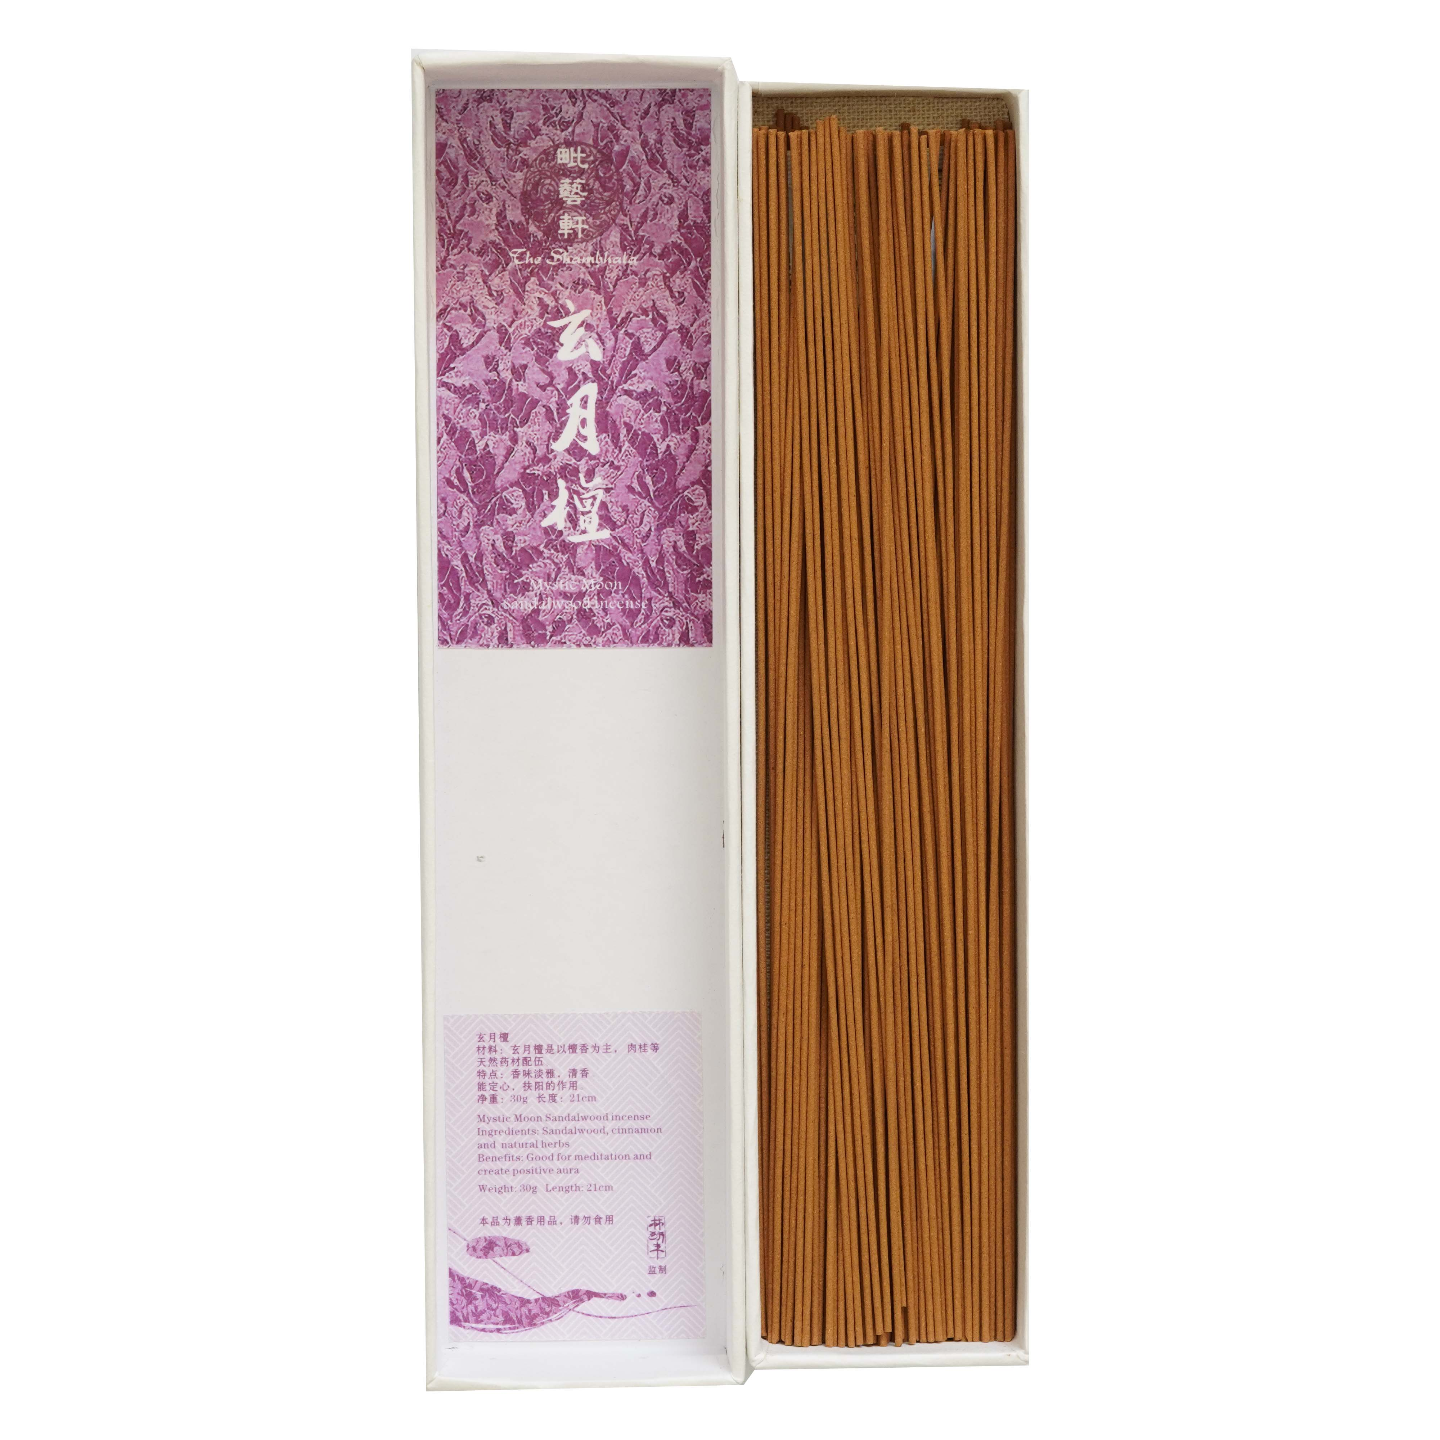 Mystic Moon Aromatic Incense Sticks